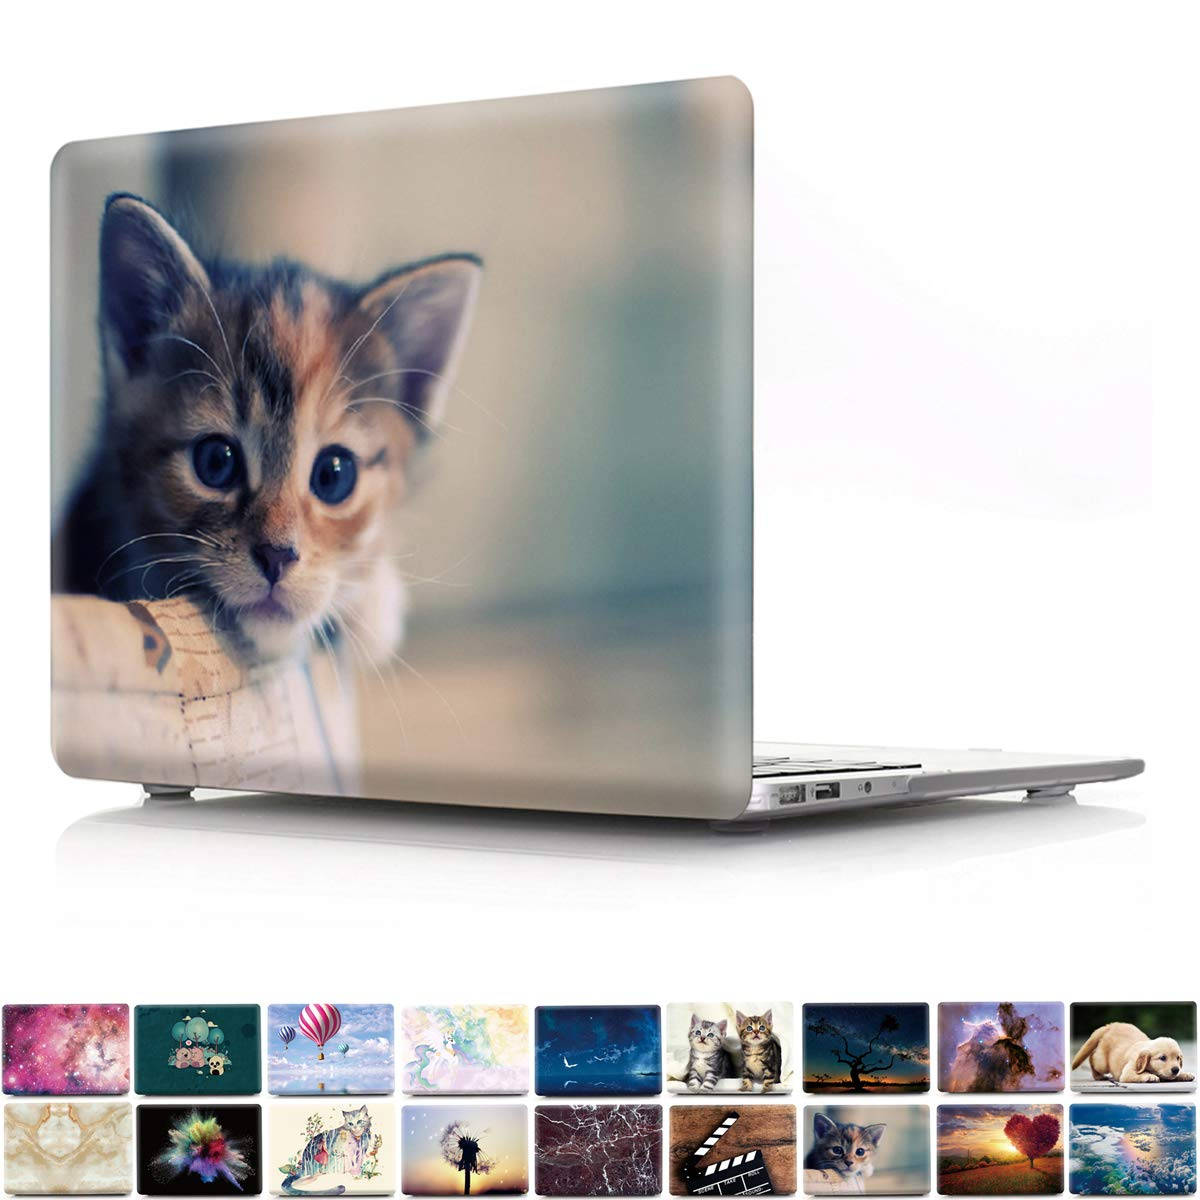 PapyHall Newest 2 in 1 Color Printing Plastic Shell Cover for 2010-2012 Release MacBook Pro 15 inch with CD-ROM (Non-Retina) Model: A1286 Kitten